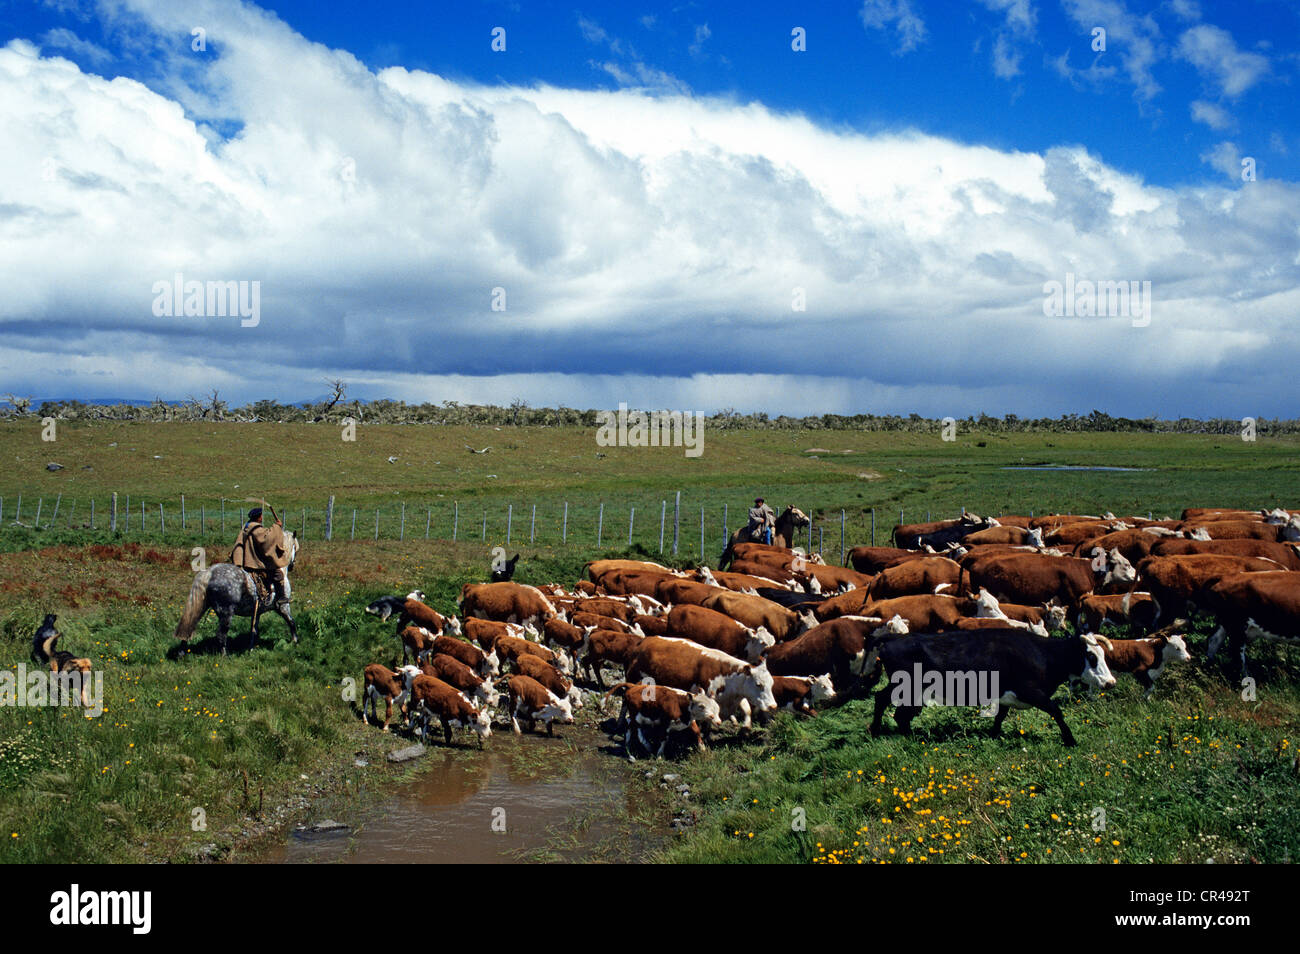 Chile, Magallanes and Antartica Chilena Region, Ultima Esperanza Province, huasos (herd keeper) leading its herd - Stock Image